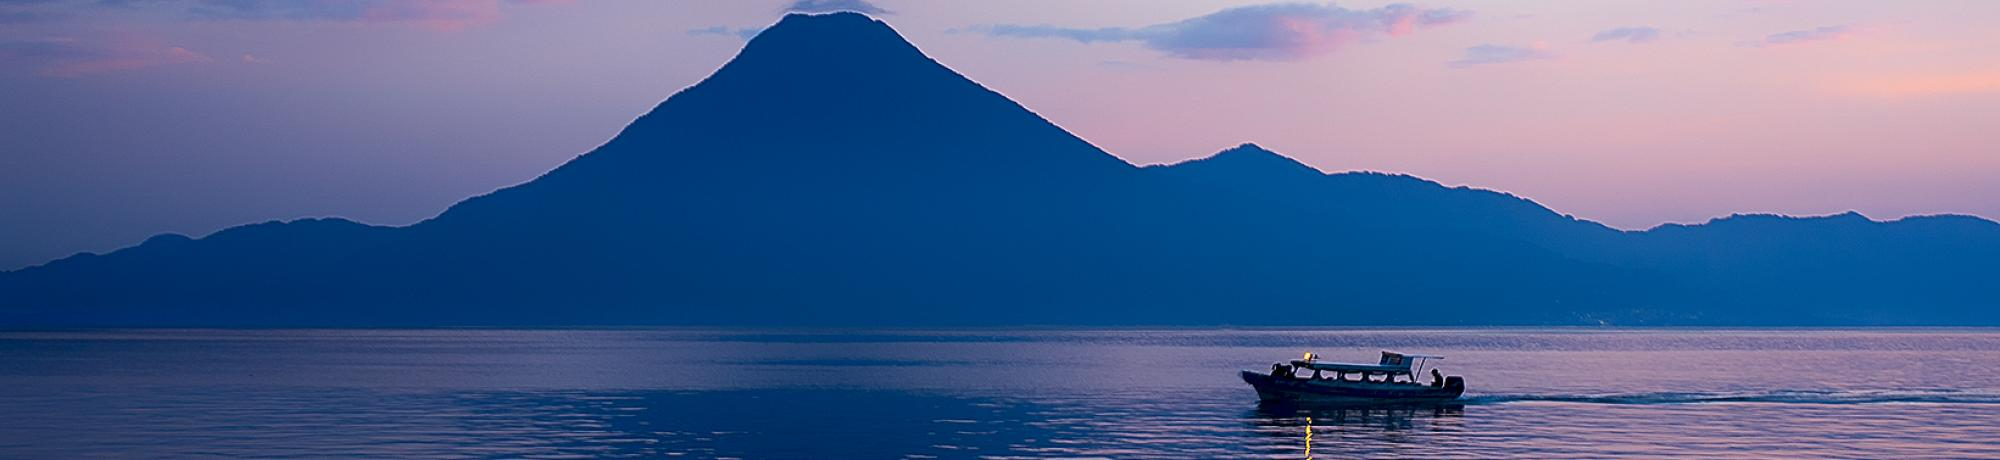 UC Davis Study Abroad, Summer Abroad Guatemala, Ecological and Social Issues at Lake Atitlan, Guatemala Program, Header Image, Instructor Page